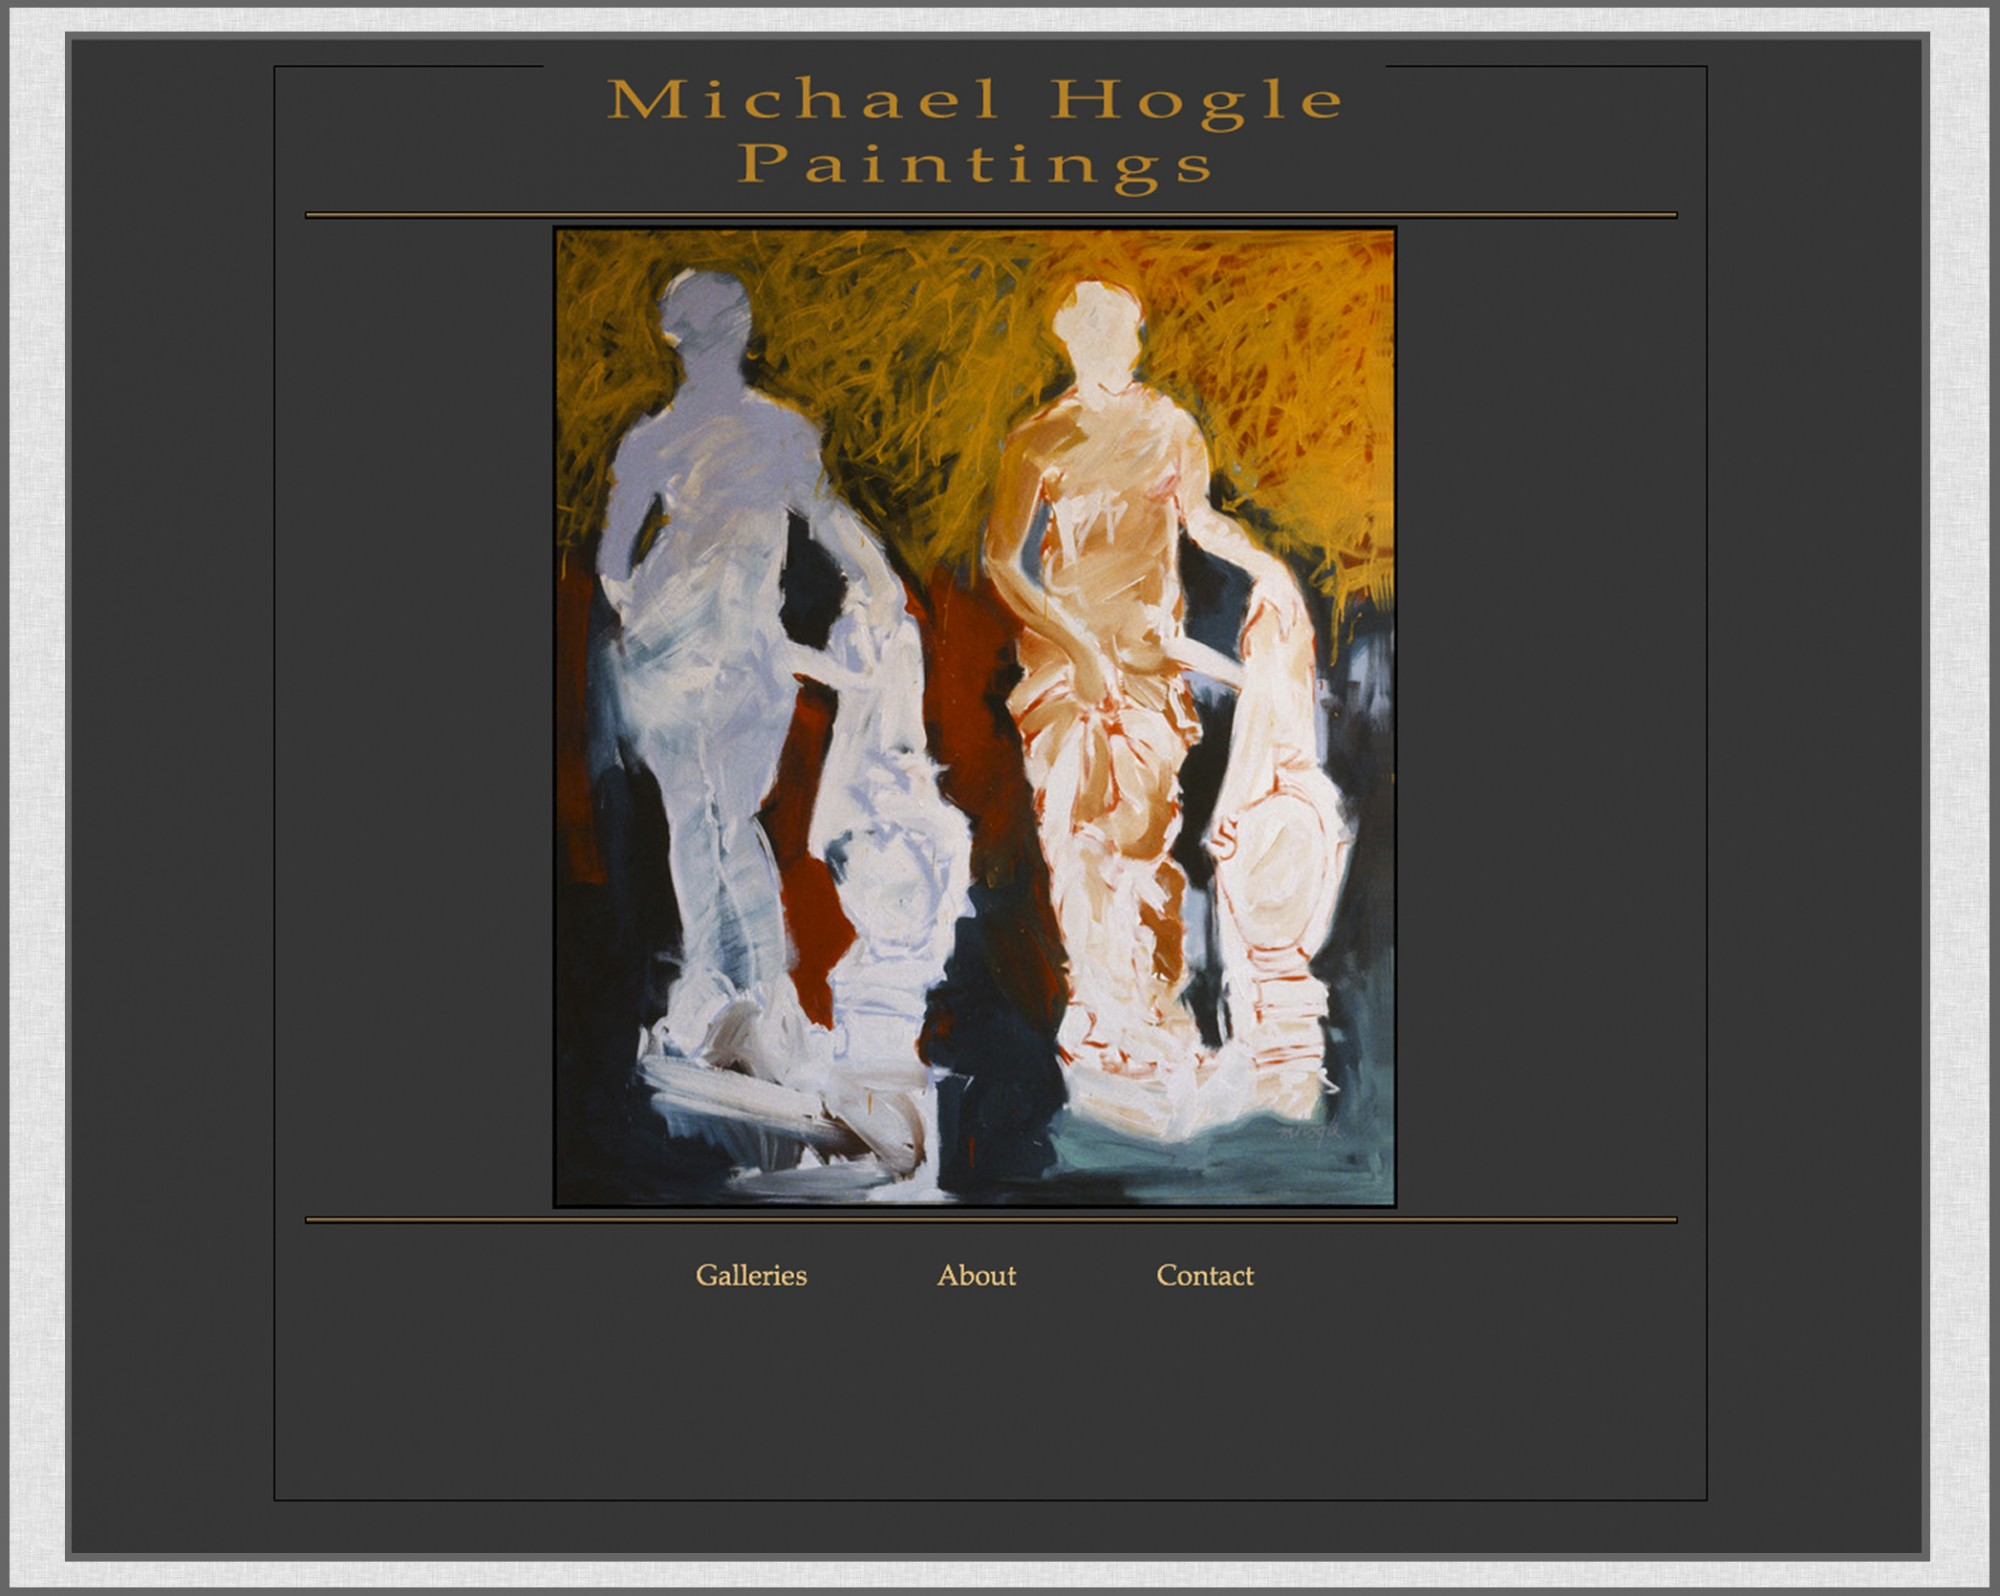 home page of michaelhogle.com